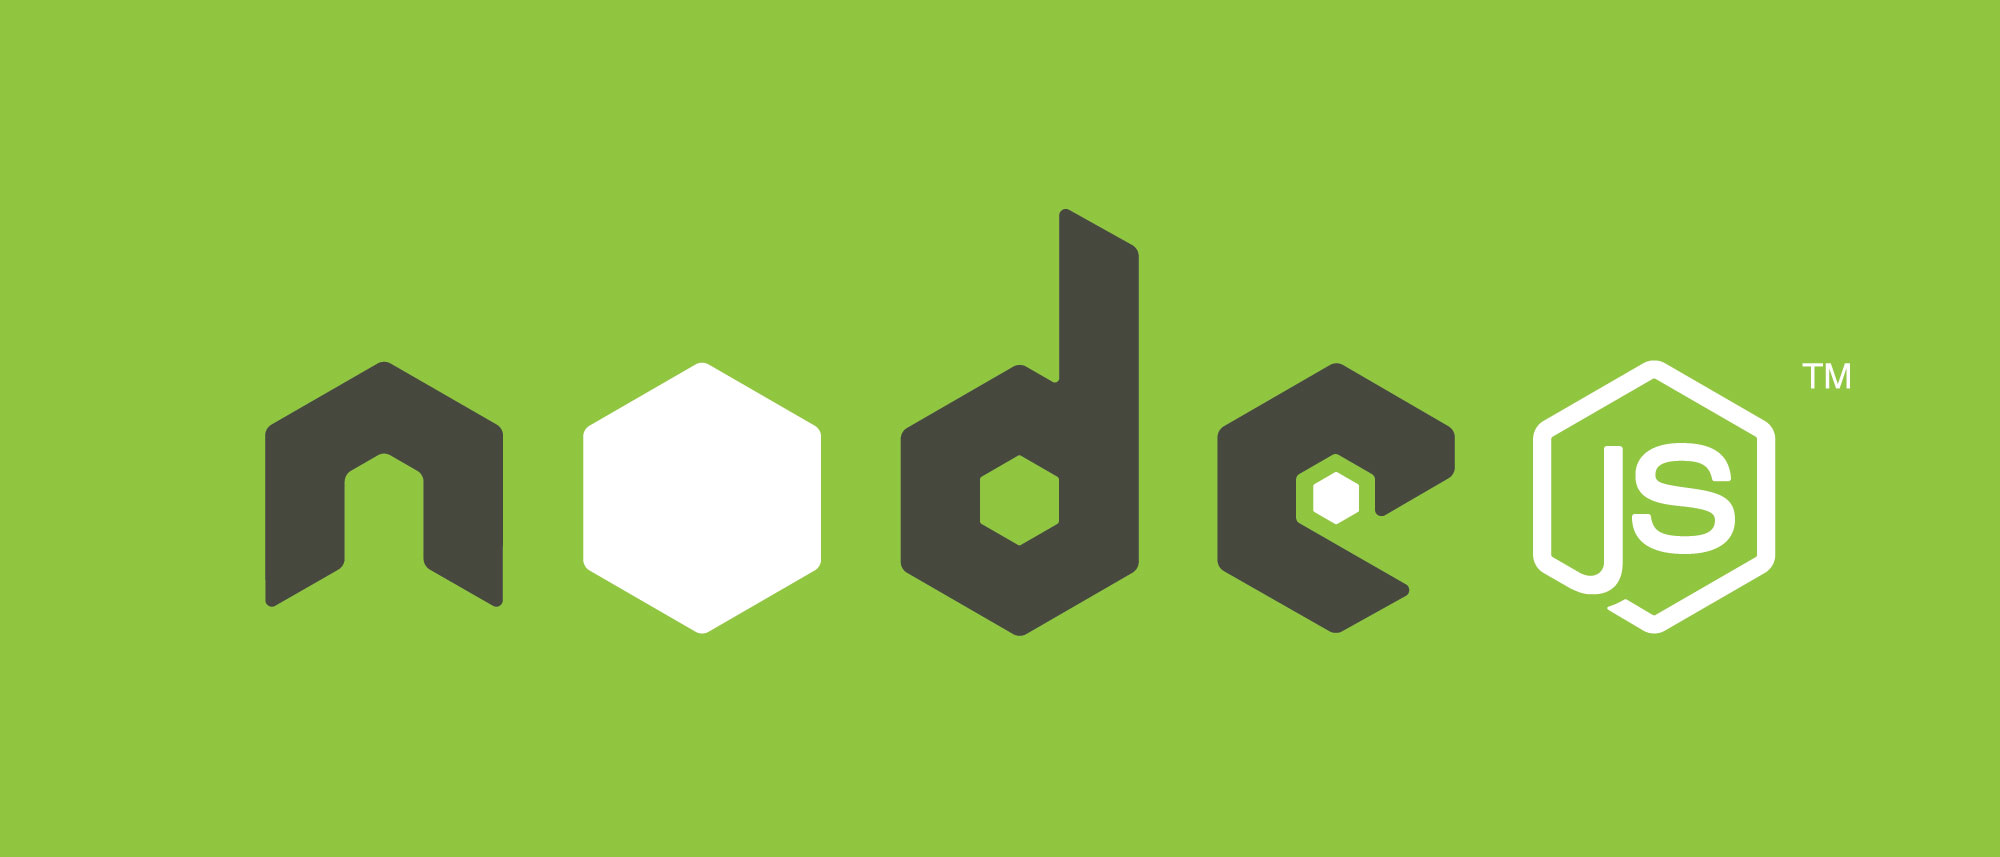 Why Node.js?